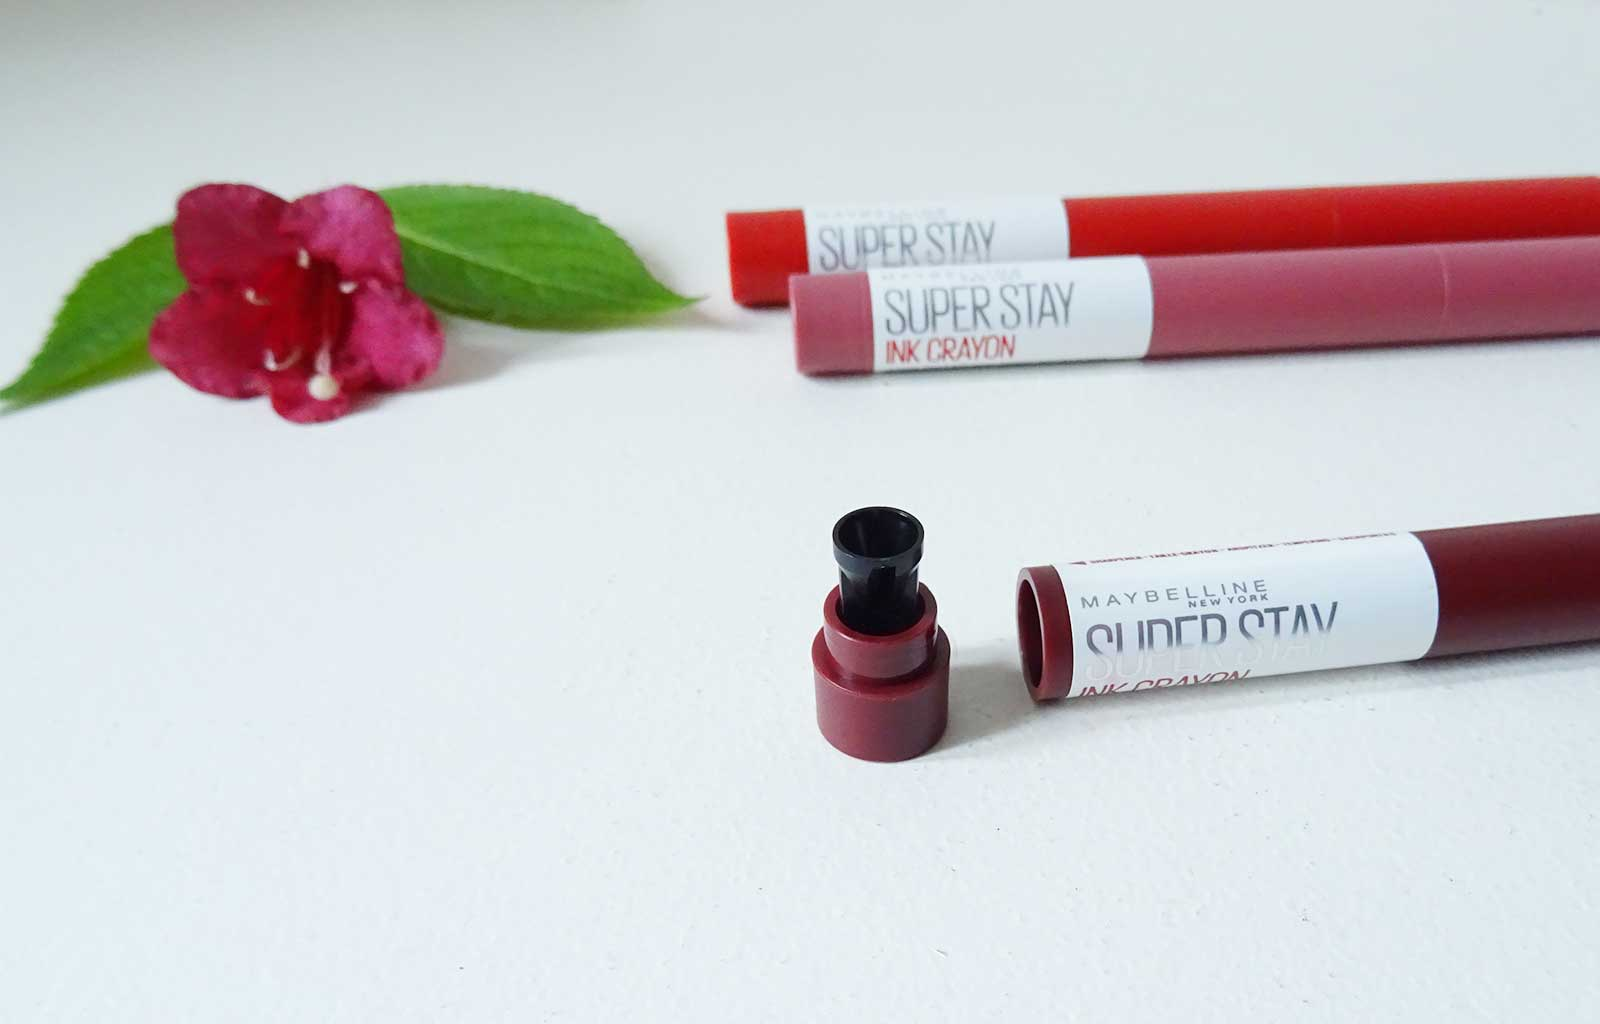 Superstay Ink Crayon Maybelline